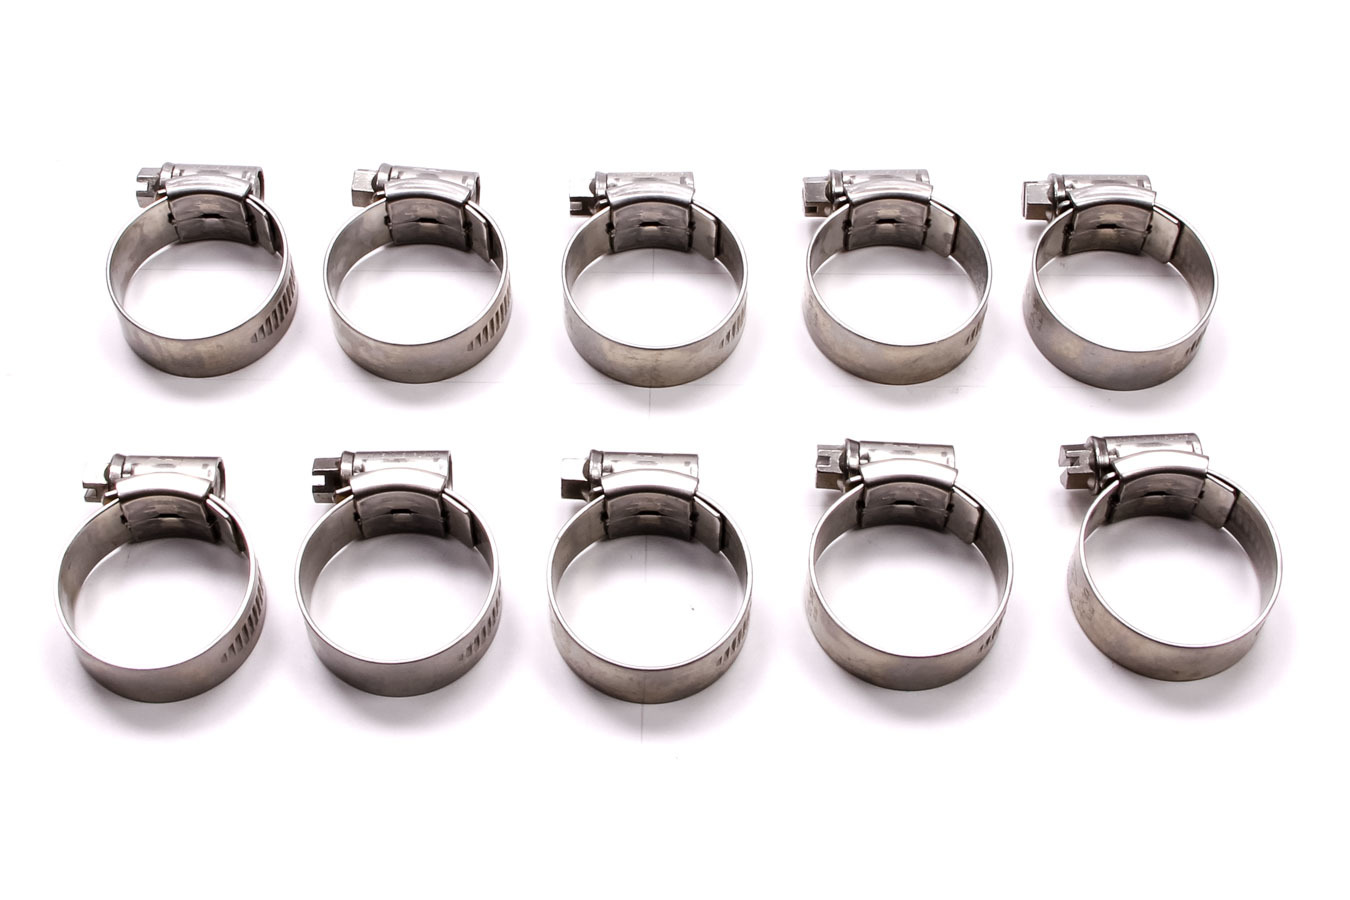 30mm-1-3/16in Hose Clamp 10pk